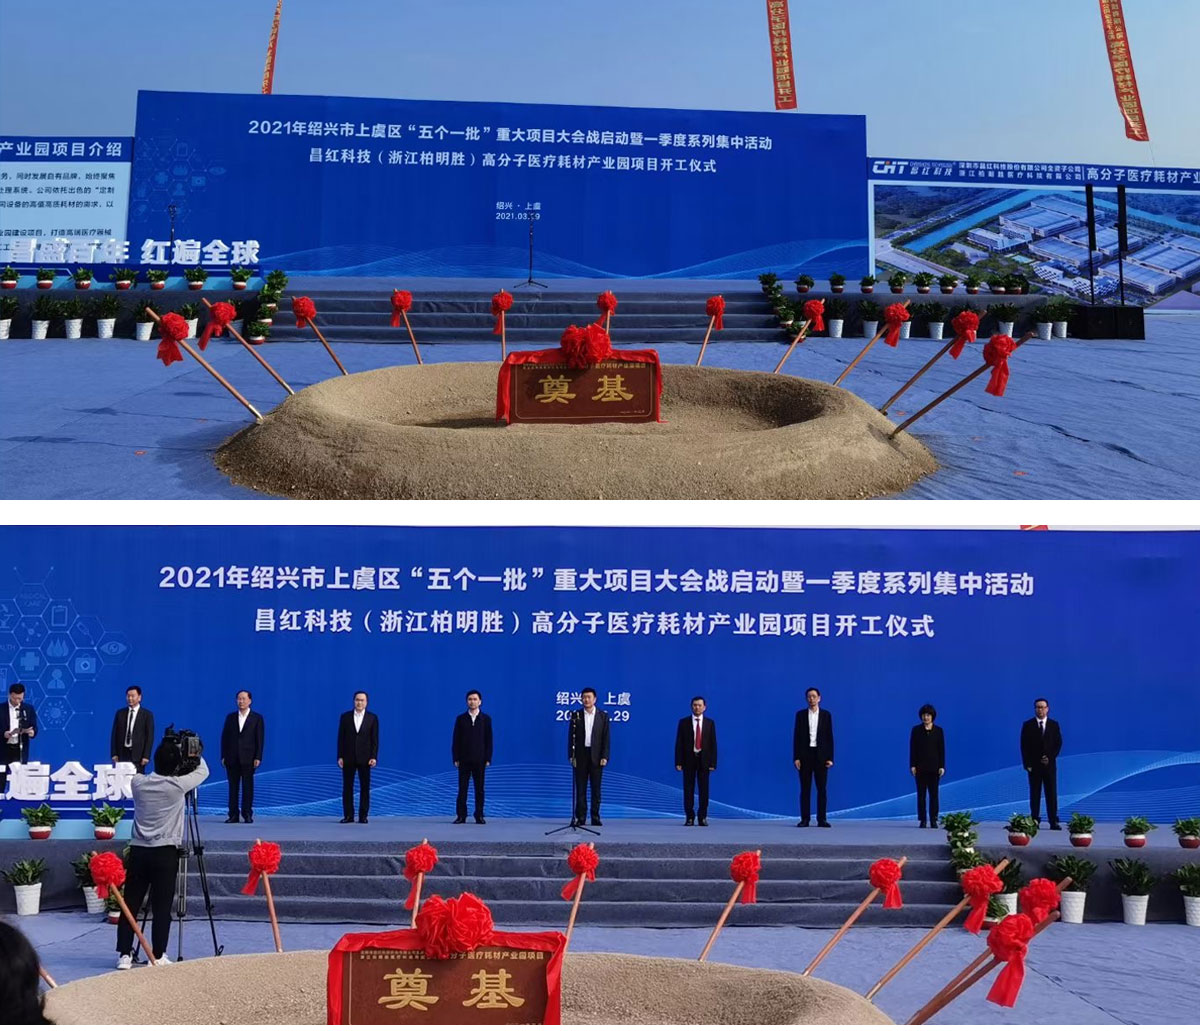 Warmly celebrate the foundation laying ceremony of the company's Zhejiang Shangyu branch factory, and wish the company prosperous and prosperous!